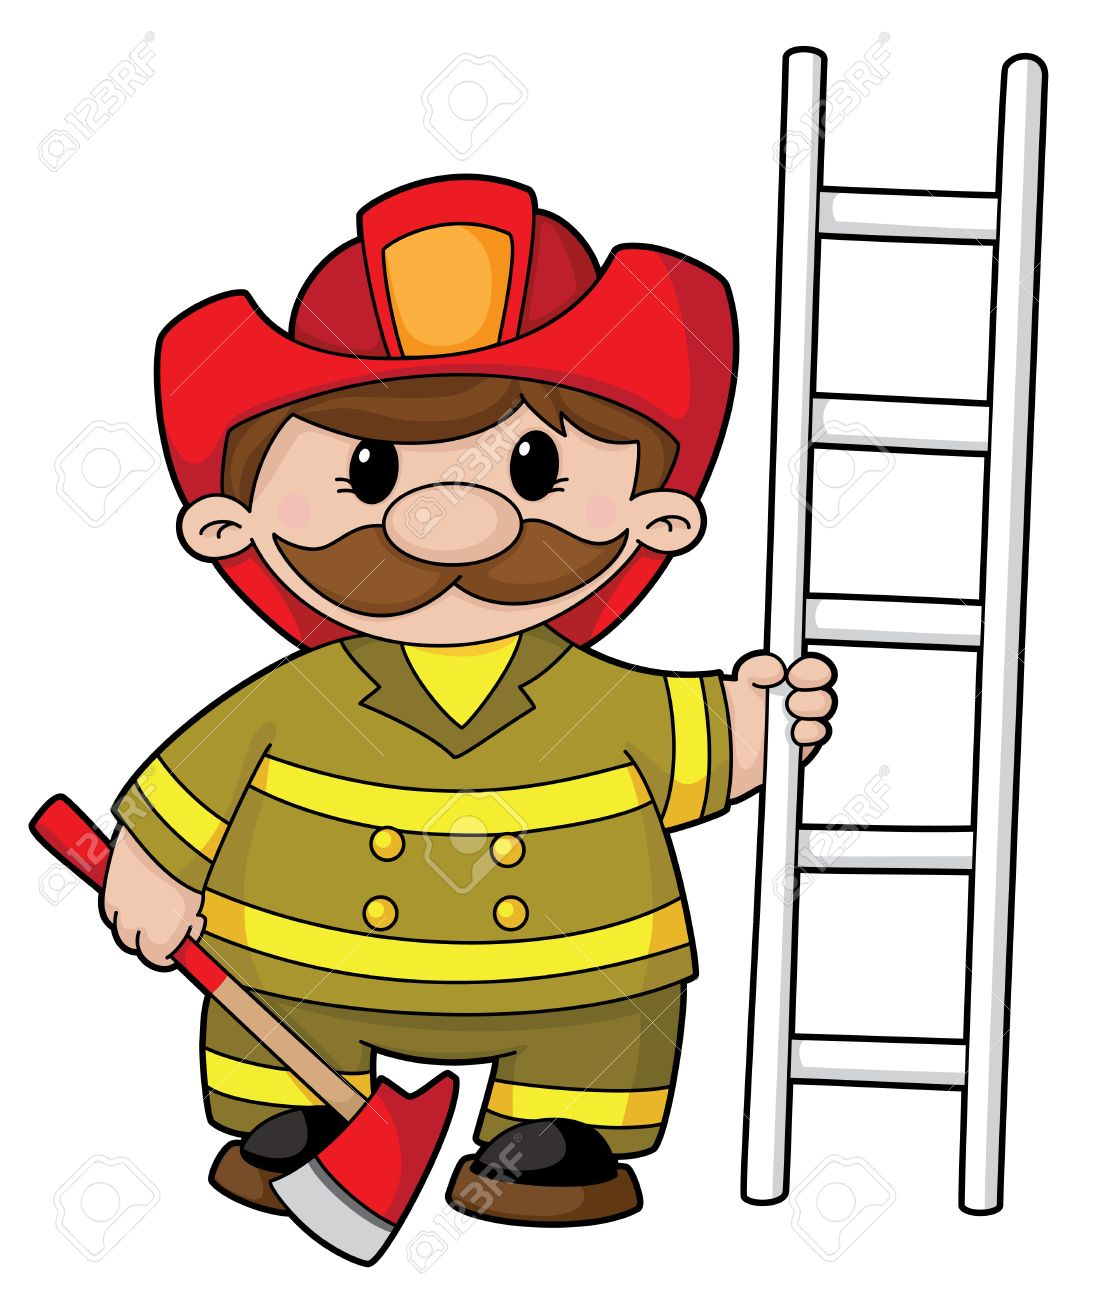 1103x1300 Helmet Clipart Firefighter Equipment